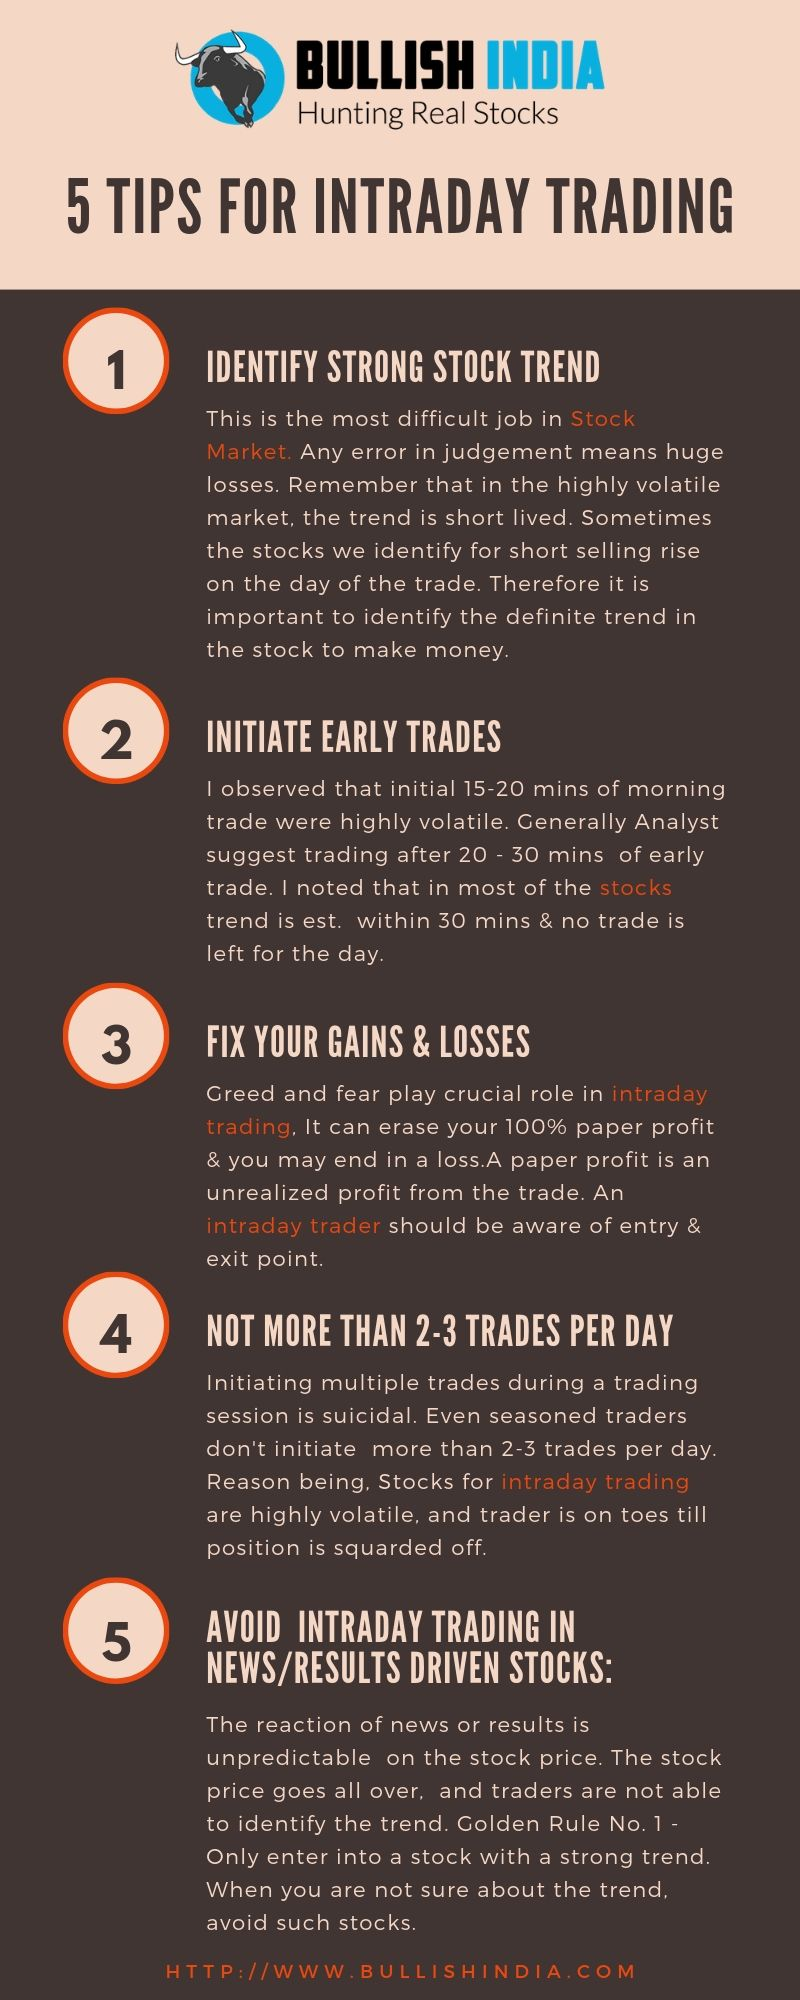 Know these tips for intraday trading recommended by the best stock